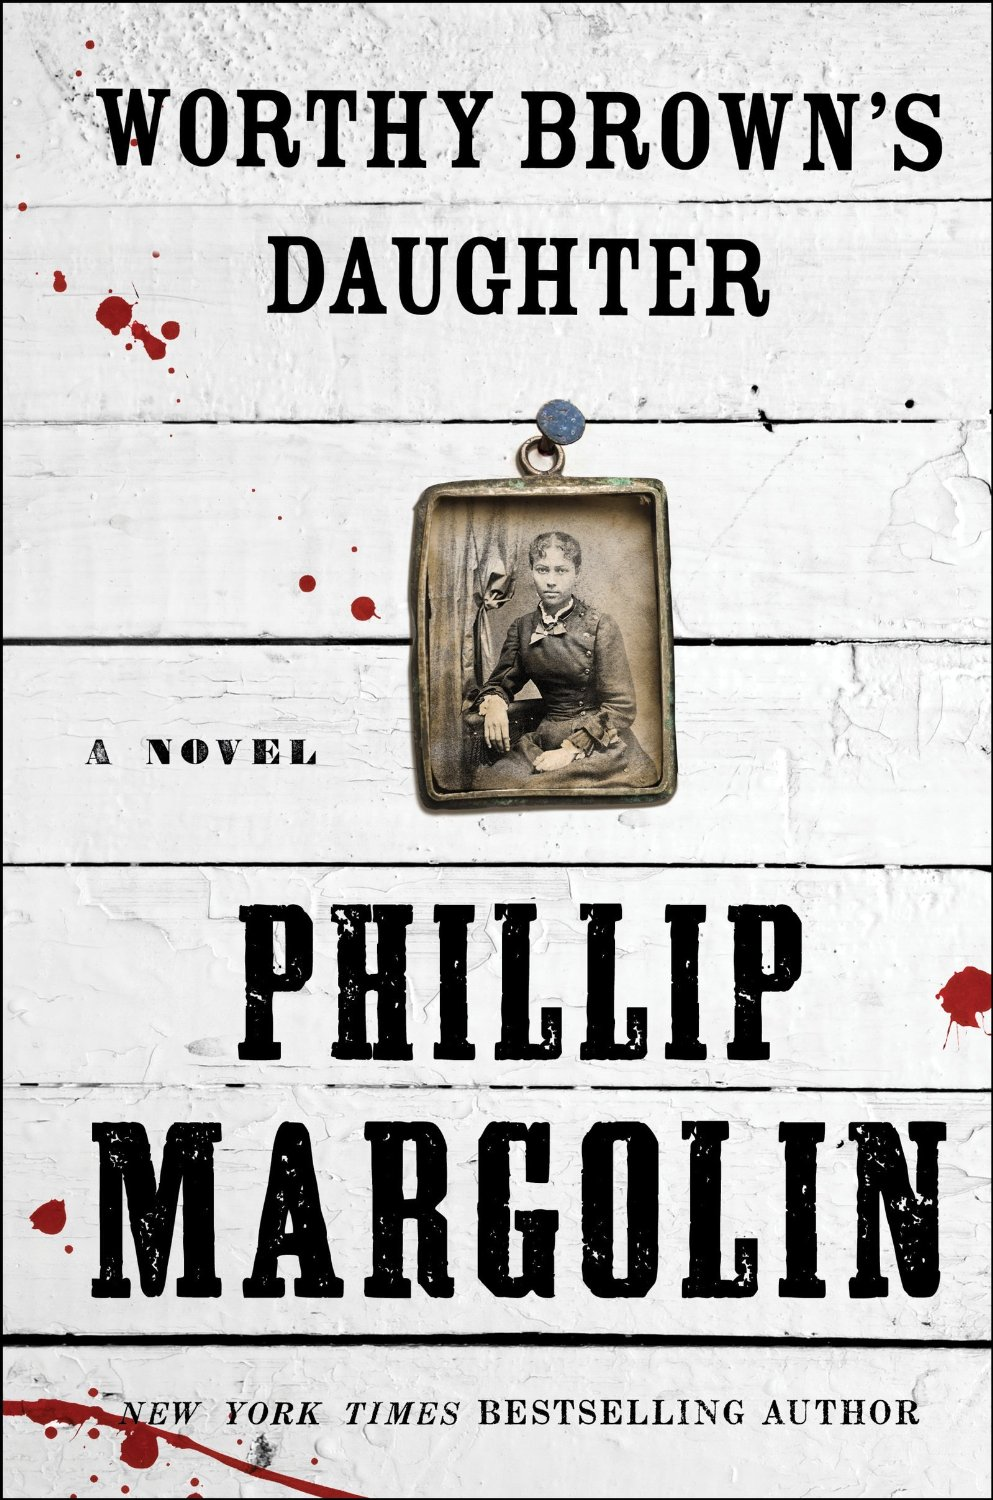 Worthy Brown's Daughter by Philip Margolin (Jan. 2014)   Amazon  |  Goodreads